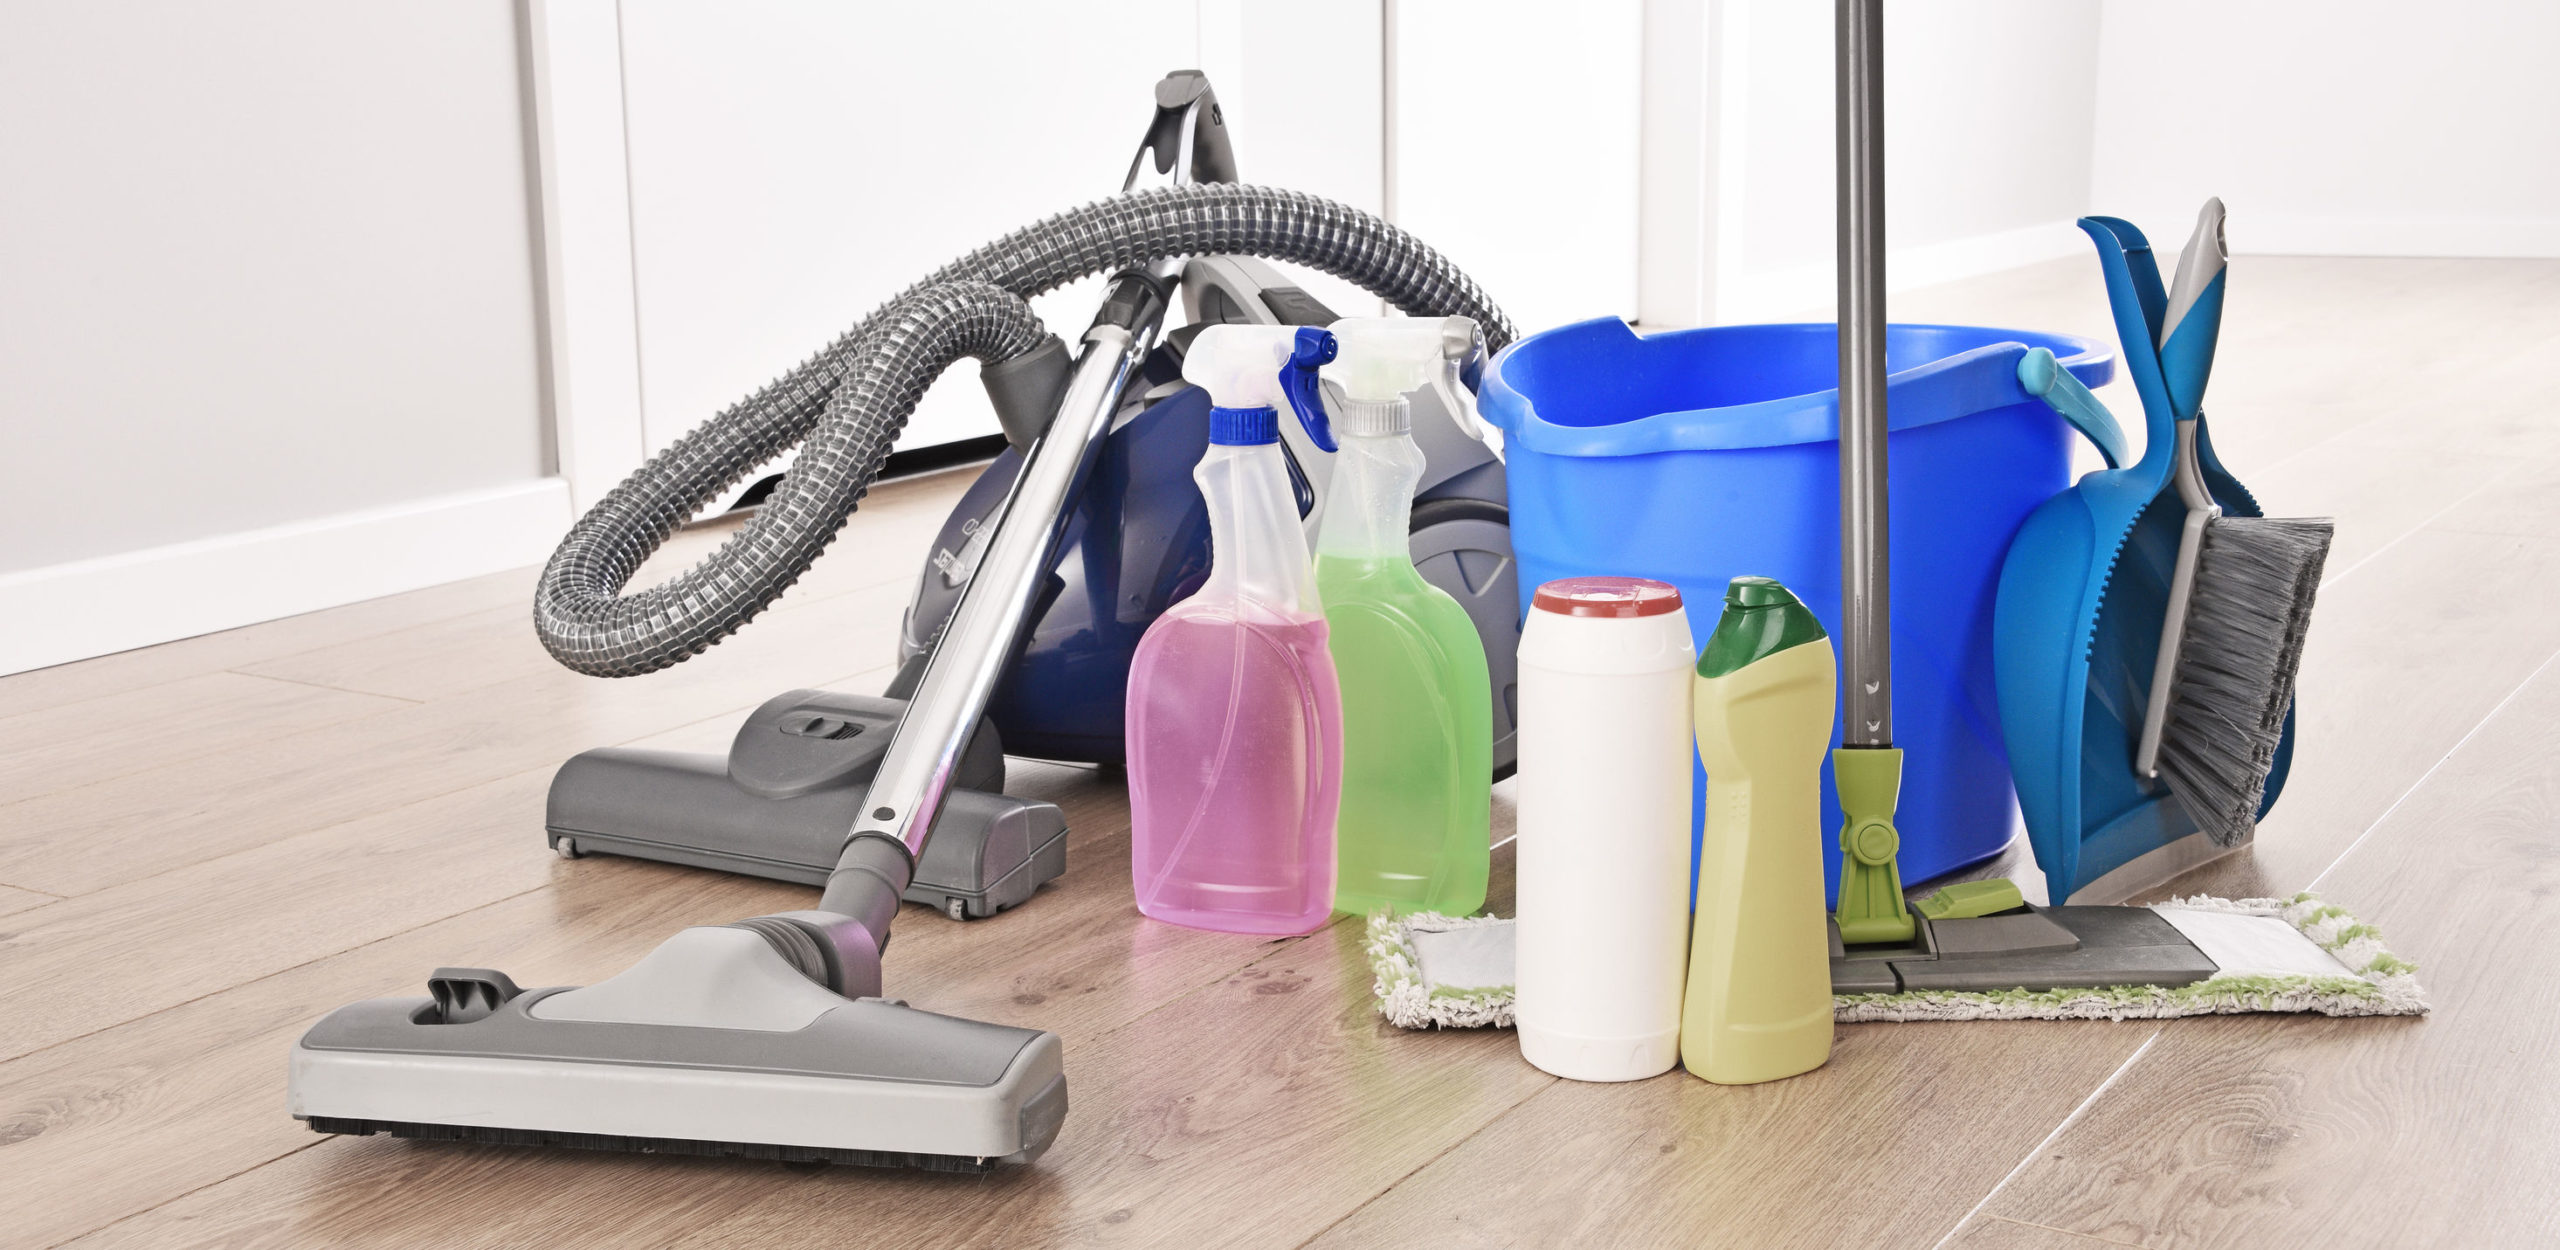 What equipment do I need to start a cleaning business